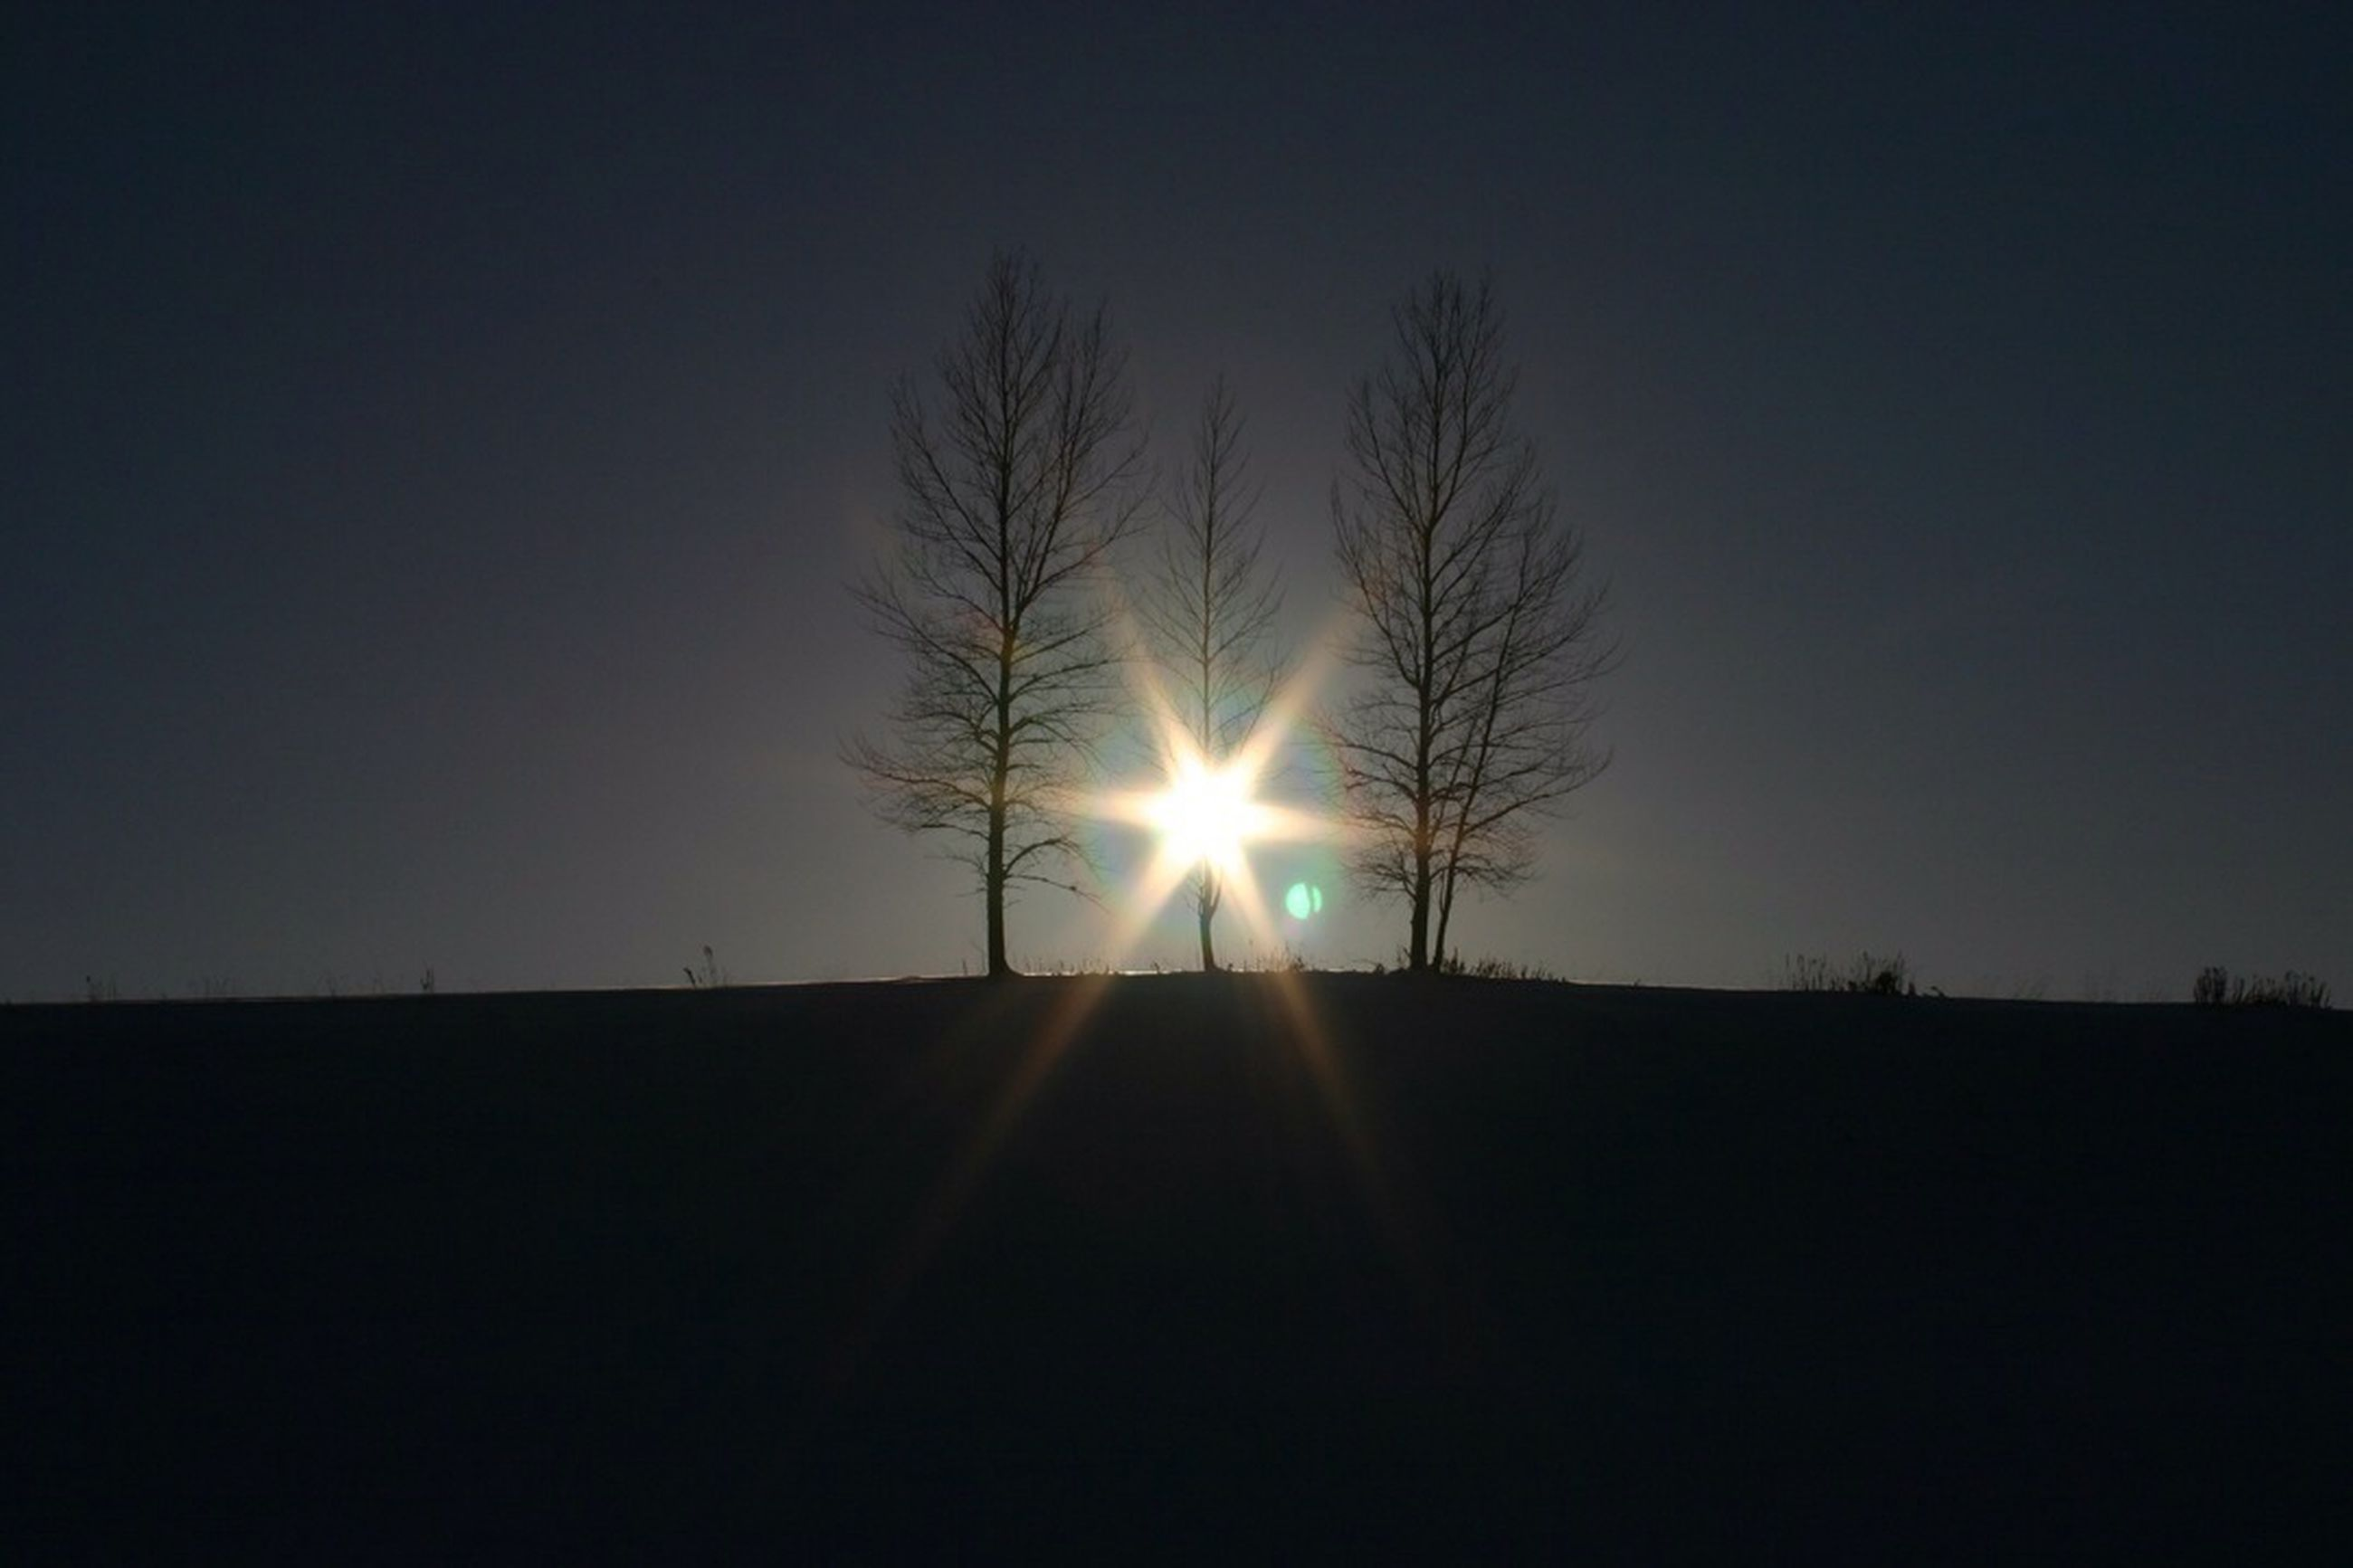 sun, silhouette, bare tree, tranquility, sunset, tranquil scene, clear sky, scenics, landscape, sunlight, lens flare, copy space, nature, beauty in nature, sunbeam, dark, sky, tree, field, outdoors